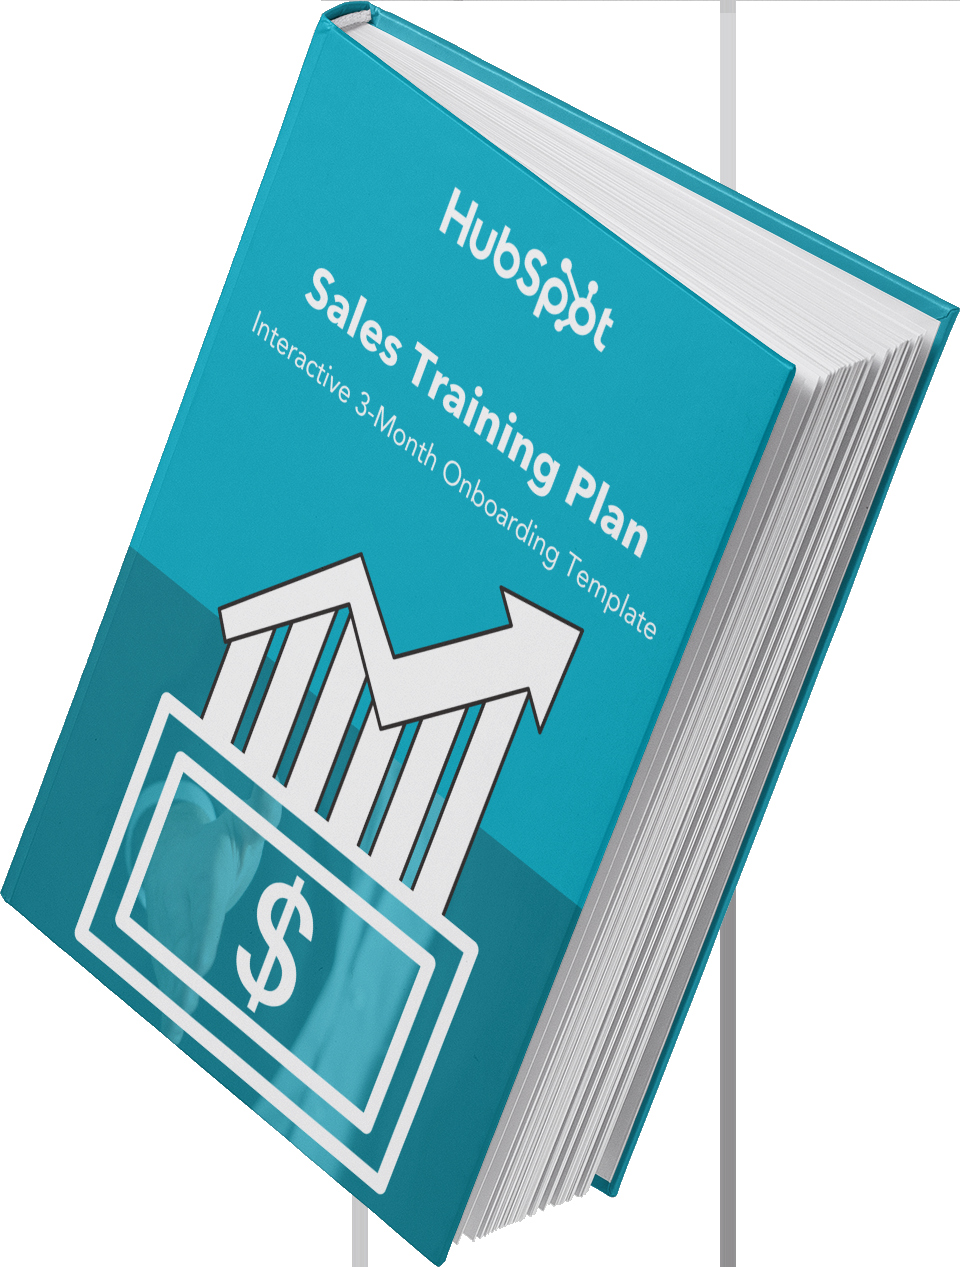 Sales Training Manual Template Luxury Free Sales Training Template – 30 60 90 Day New Hire Plan